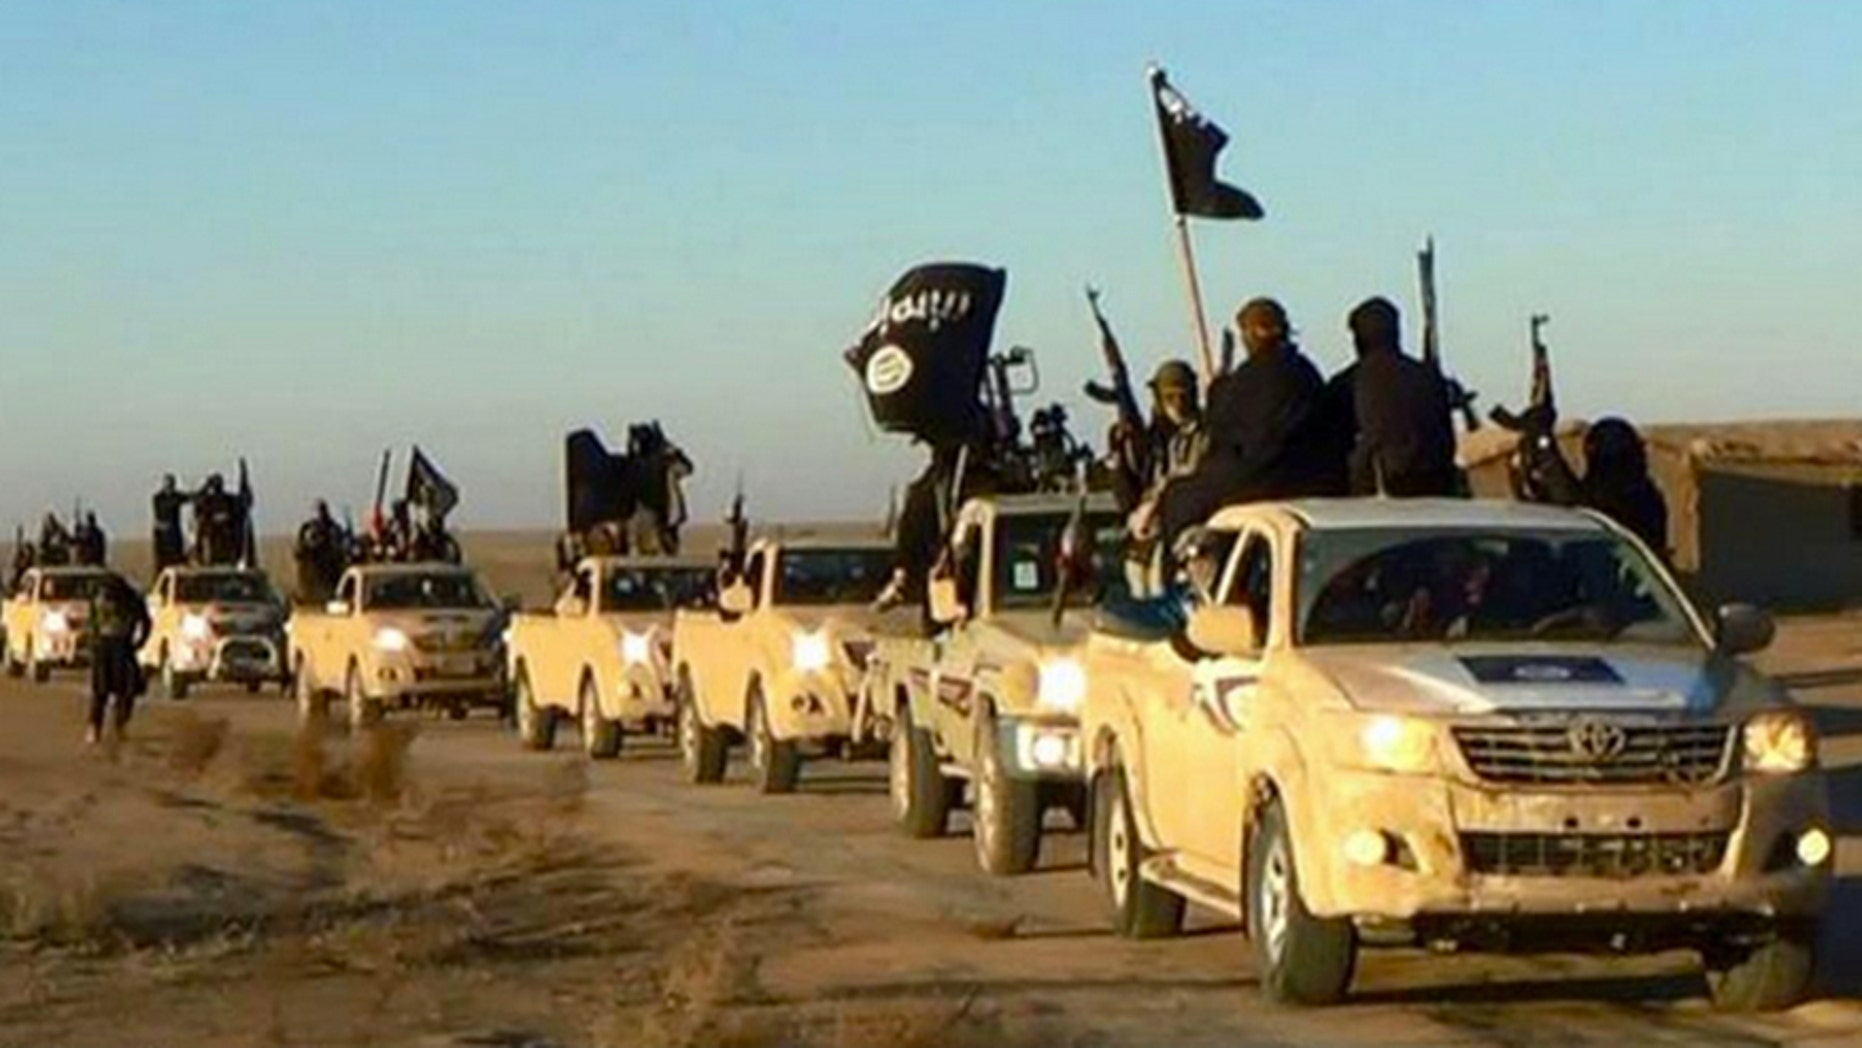 In this undated file photo released online in the summer of 2014 on a militant social media account, which has been verified and is consistent with other AP reporting, militants of the Islamic State group hold up their weapons and wave its flags on their vehicles in a convoy on a road leading to Iraq, in Raqqa, Syria.